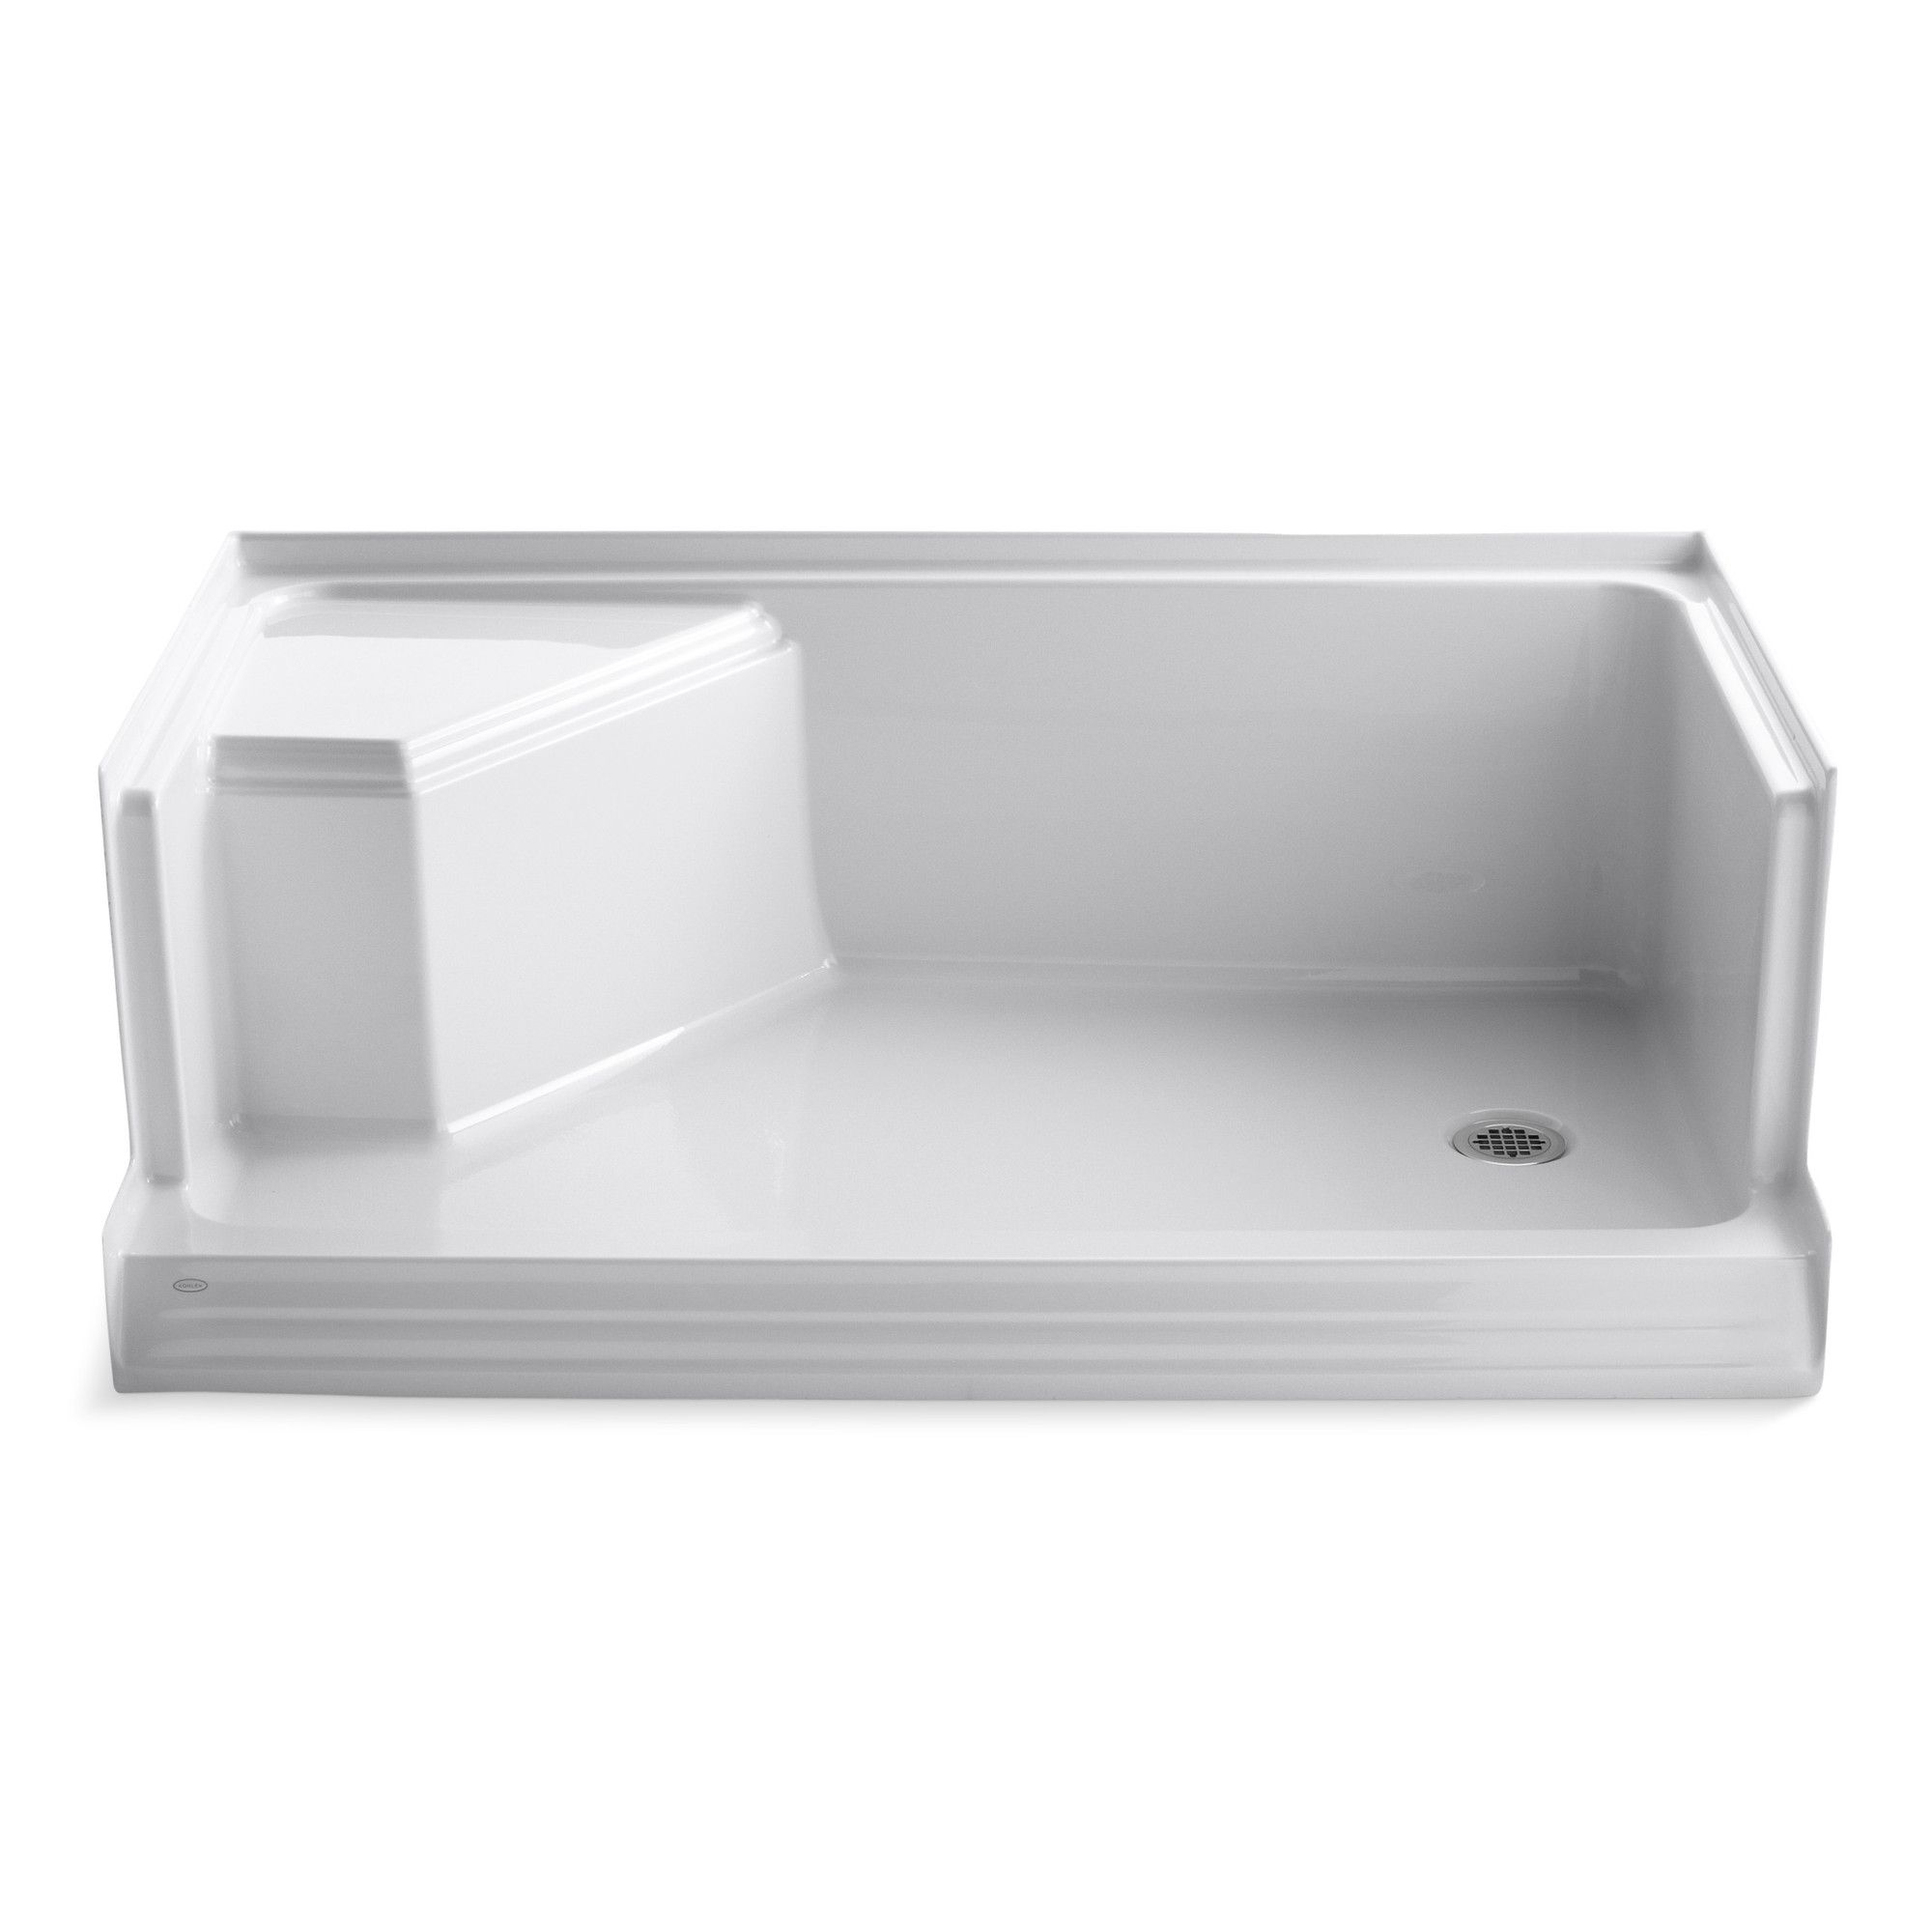 Memoirs 60 X 36 Single Threshold Right Hand Drain Shower Base With Integral Seat At Left Acrylic Shower Base Shower Base Shower Seat